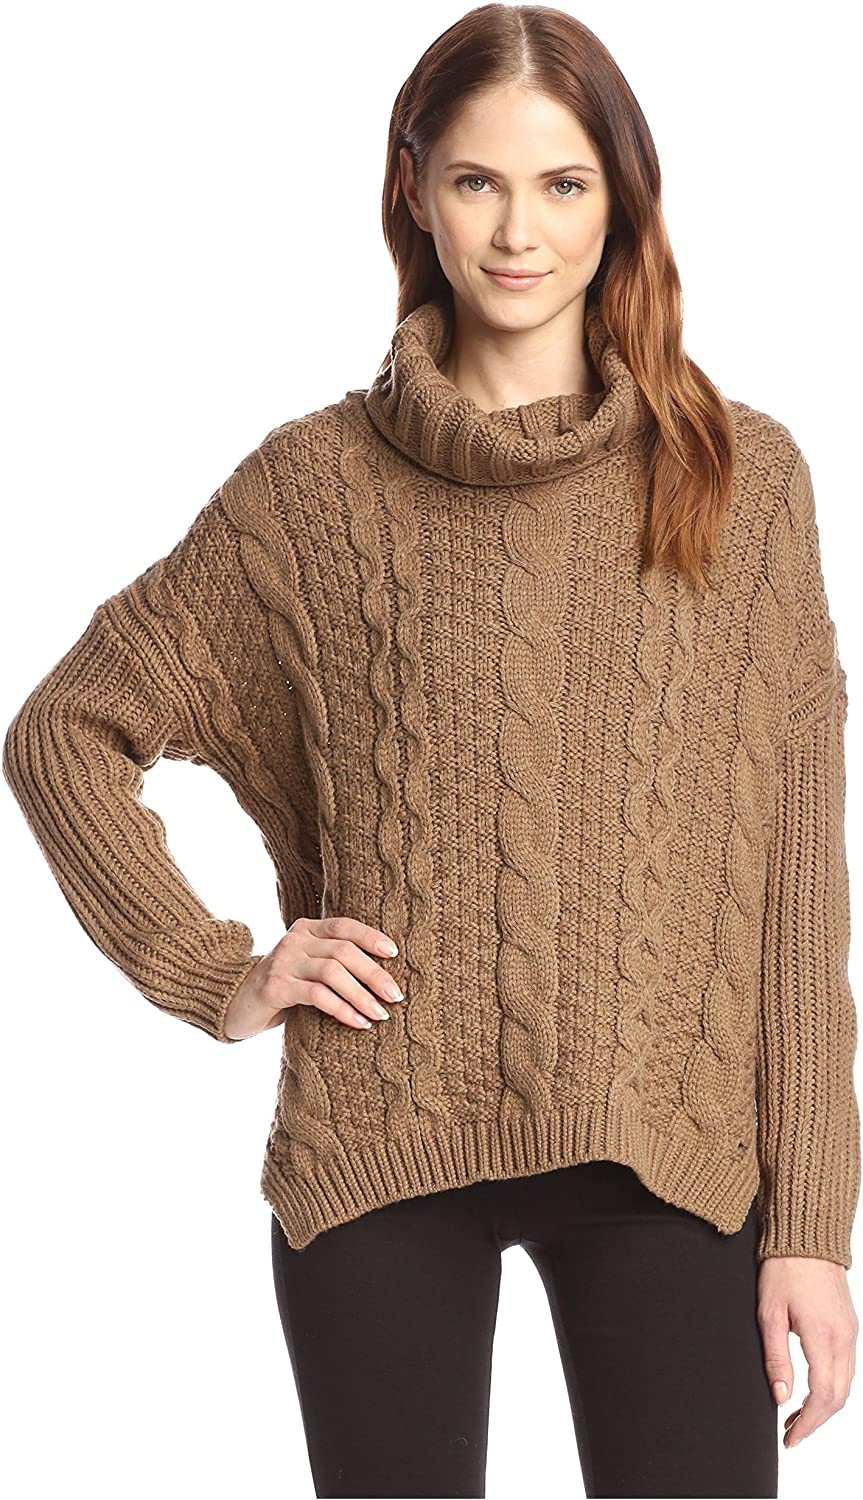 Allison Collection Women's Cable Knit Cowl Neck Sweater